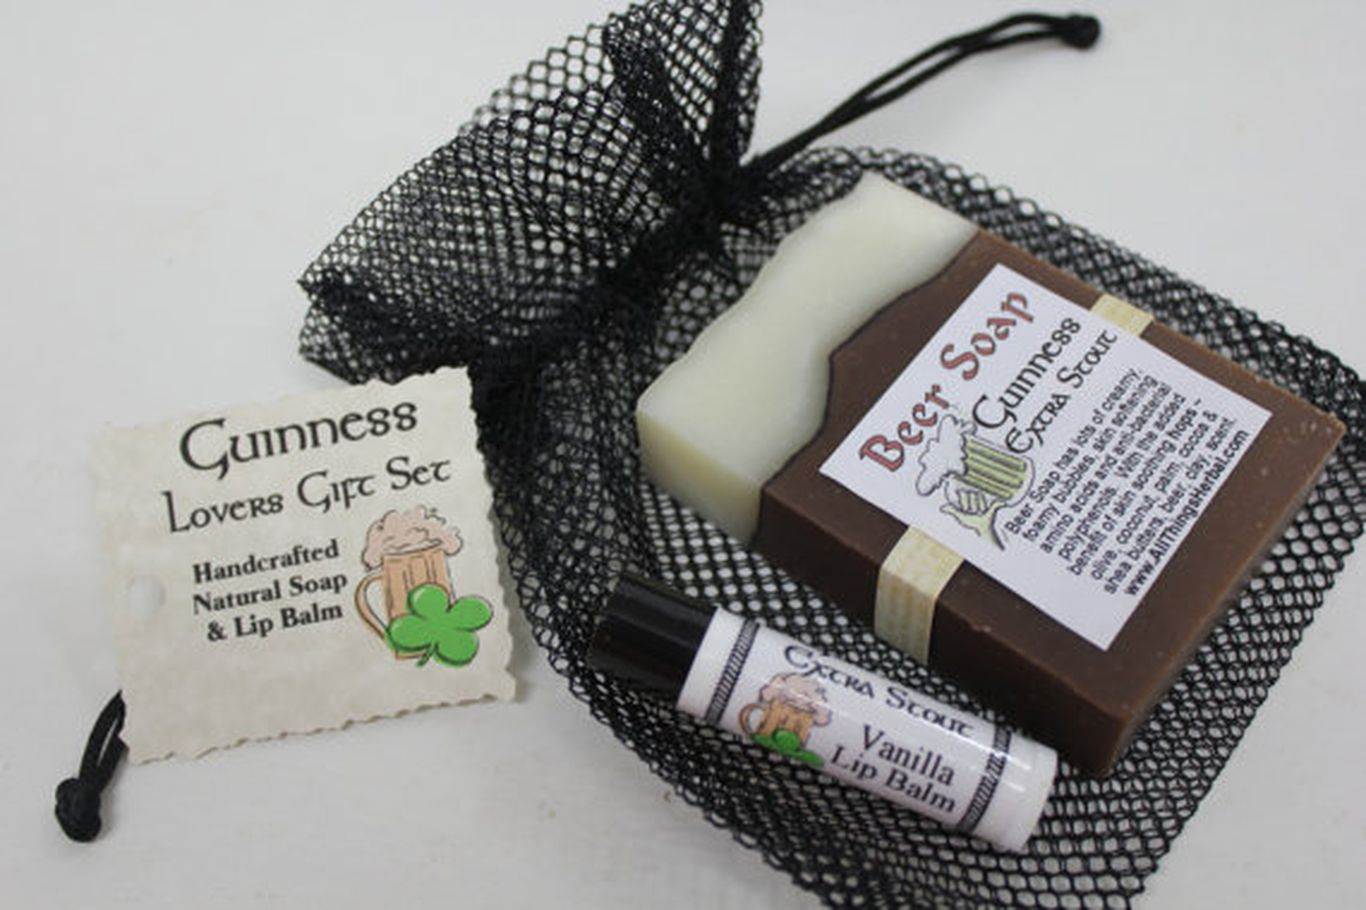 Beer Soap & Lip Balm